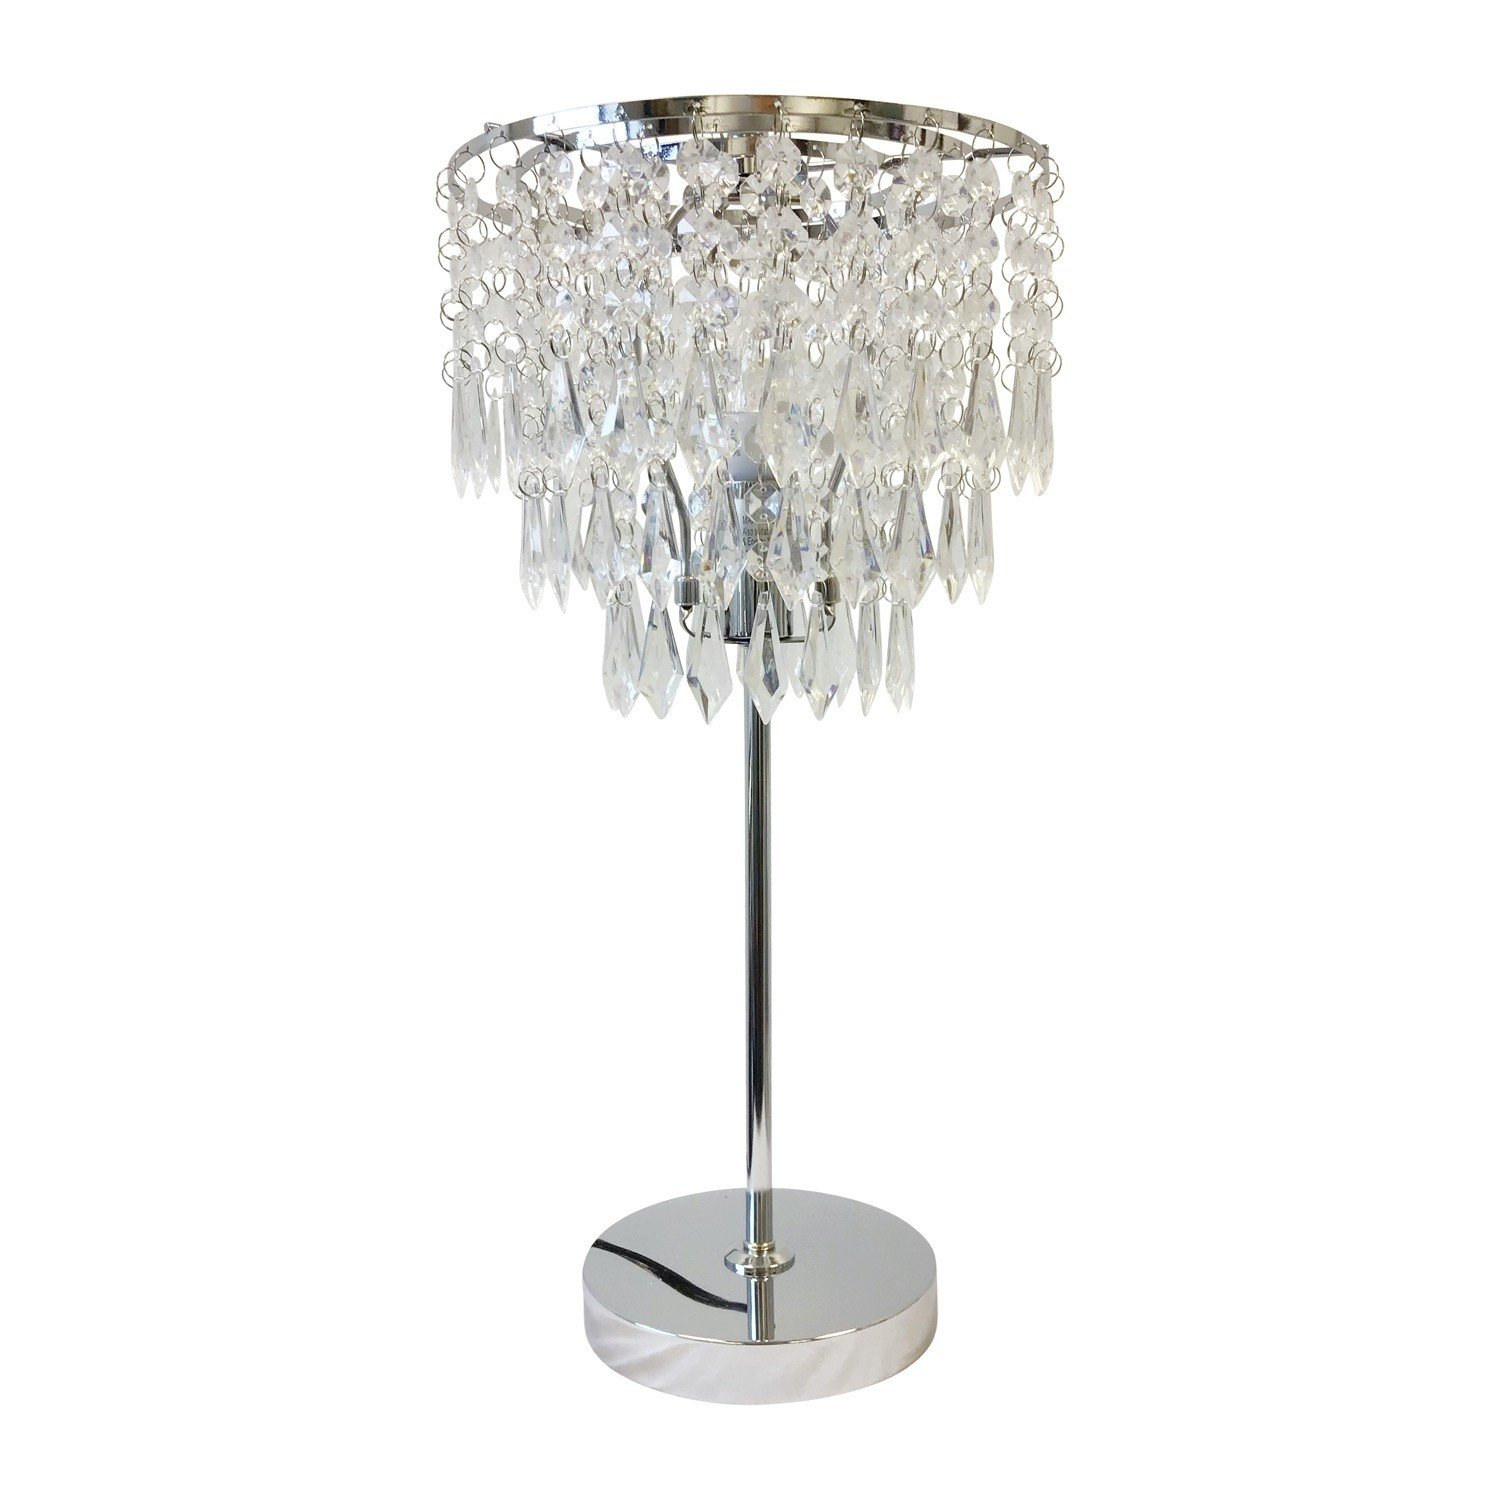 Chrome And Acrylic Crystal Jewelled, Chandelier Bedside Lamps Uk